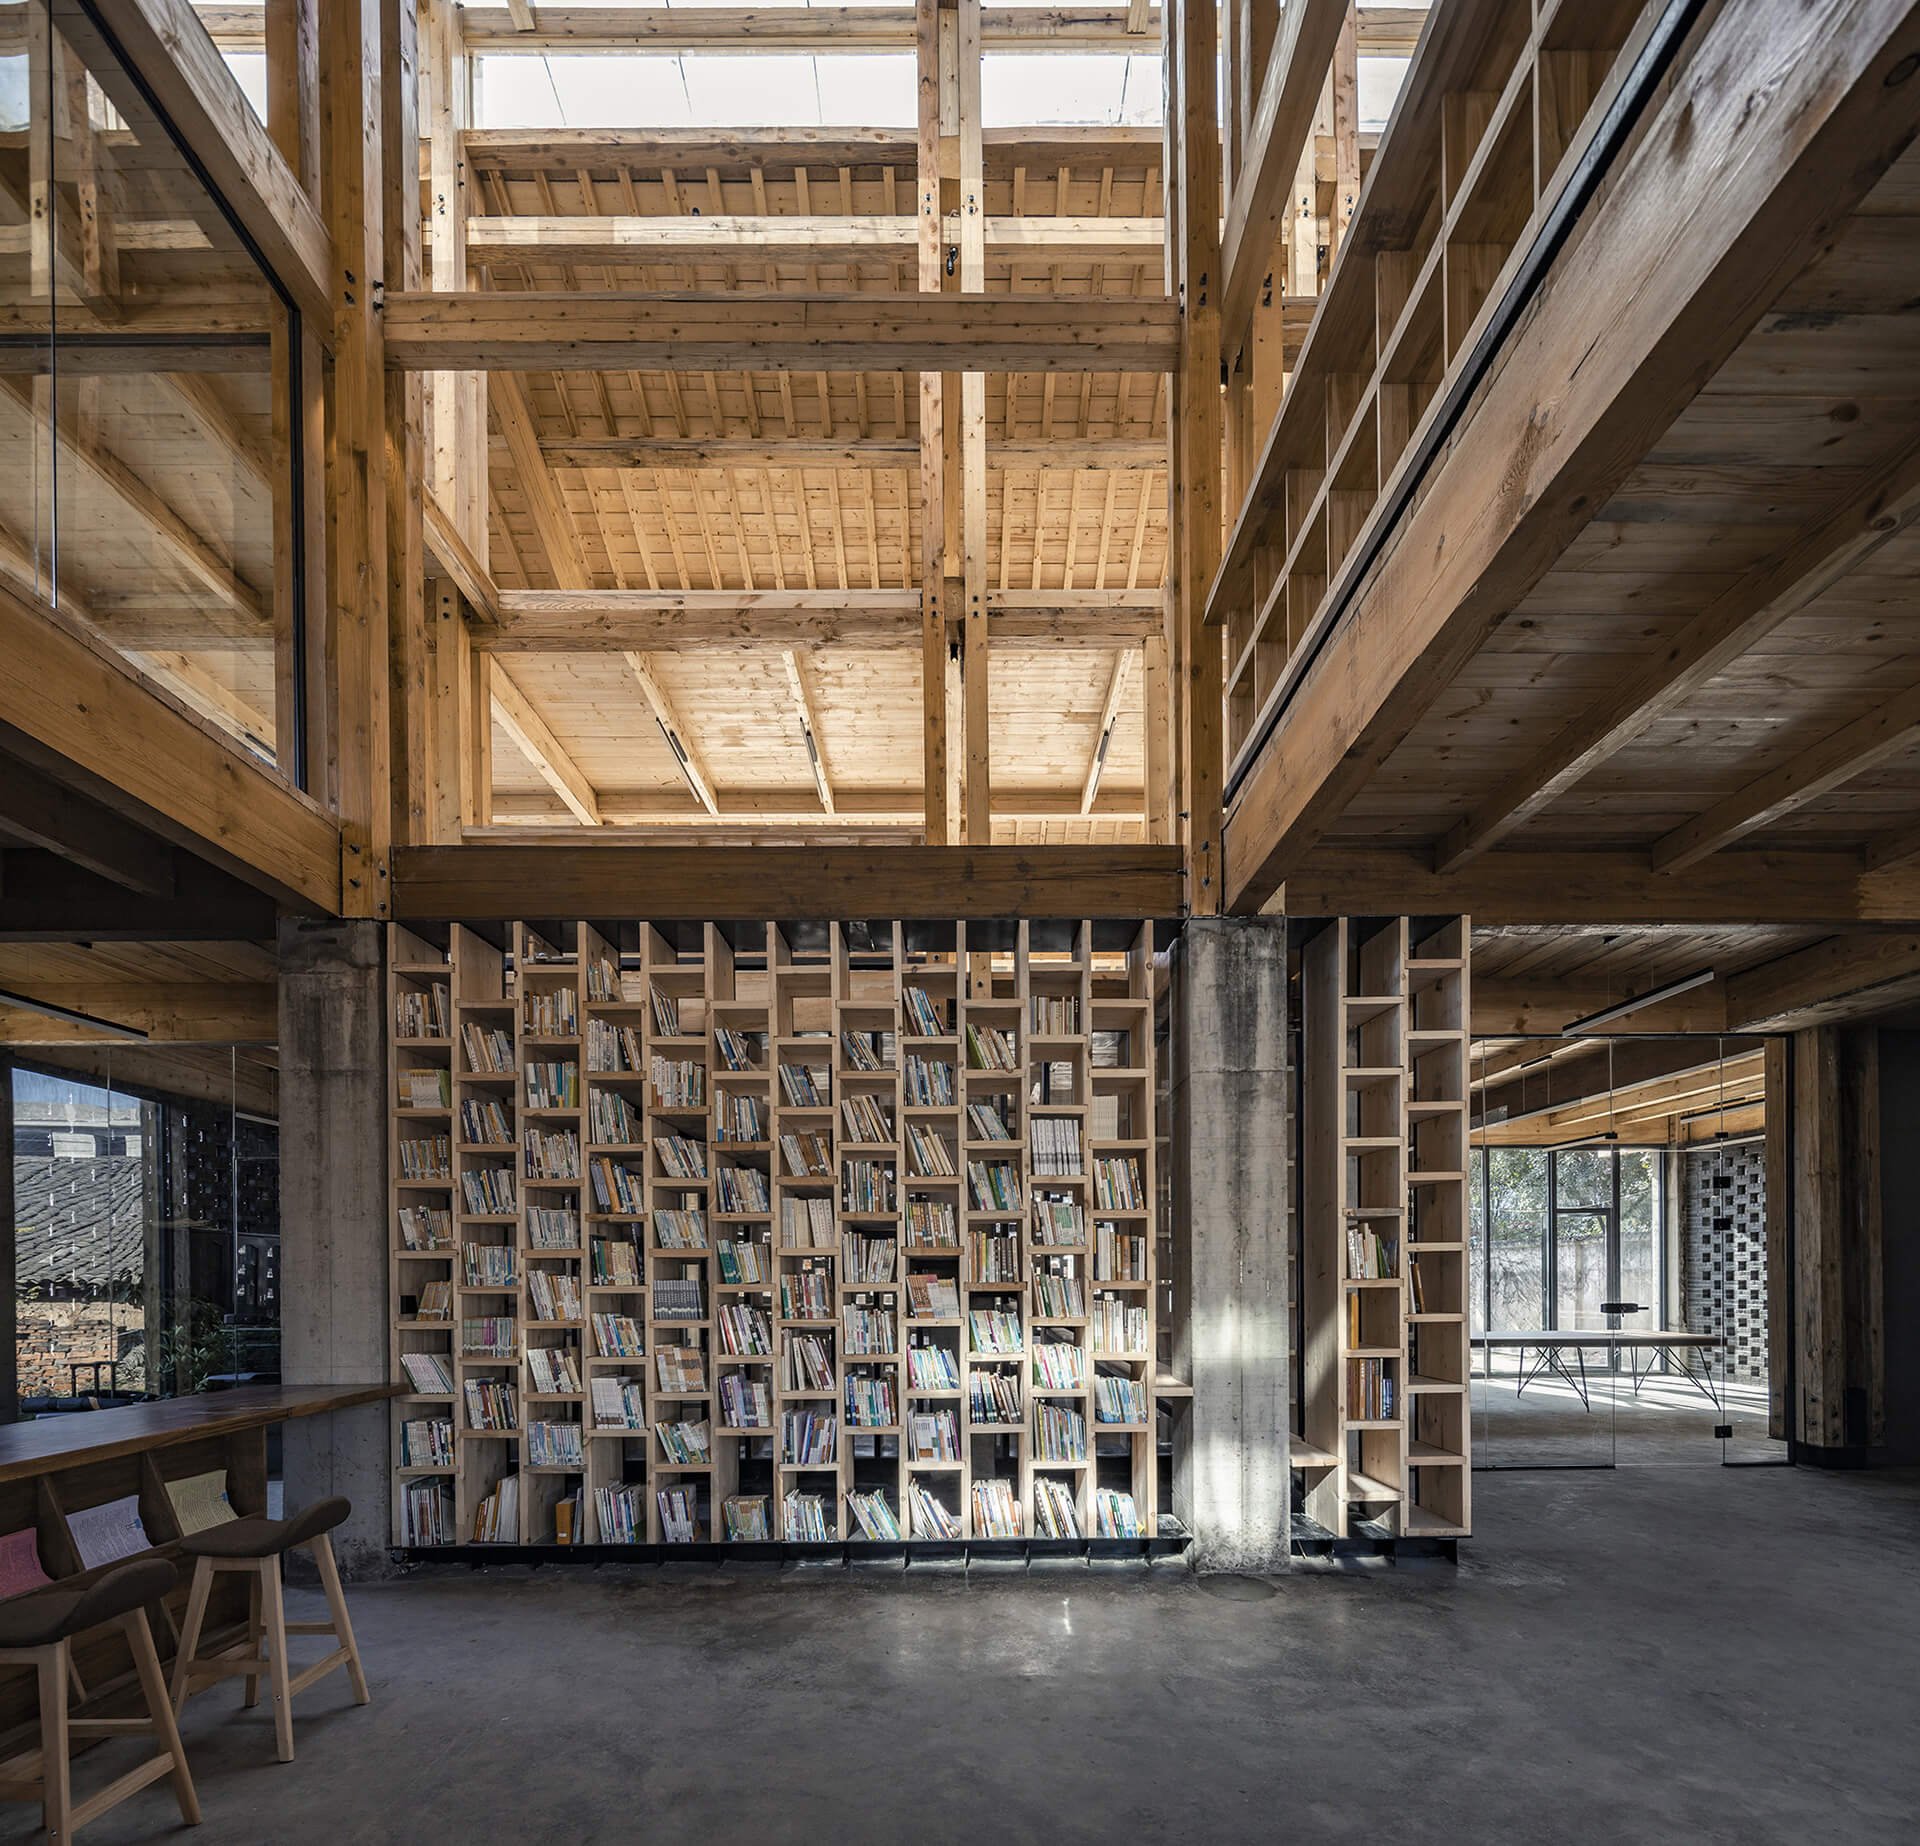 Resting area with a bookshelf dividing the space | Party and Public Service Center of Yuanheguan Village by LUO Studio | STIRworld